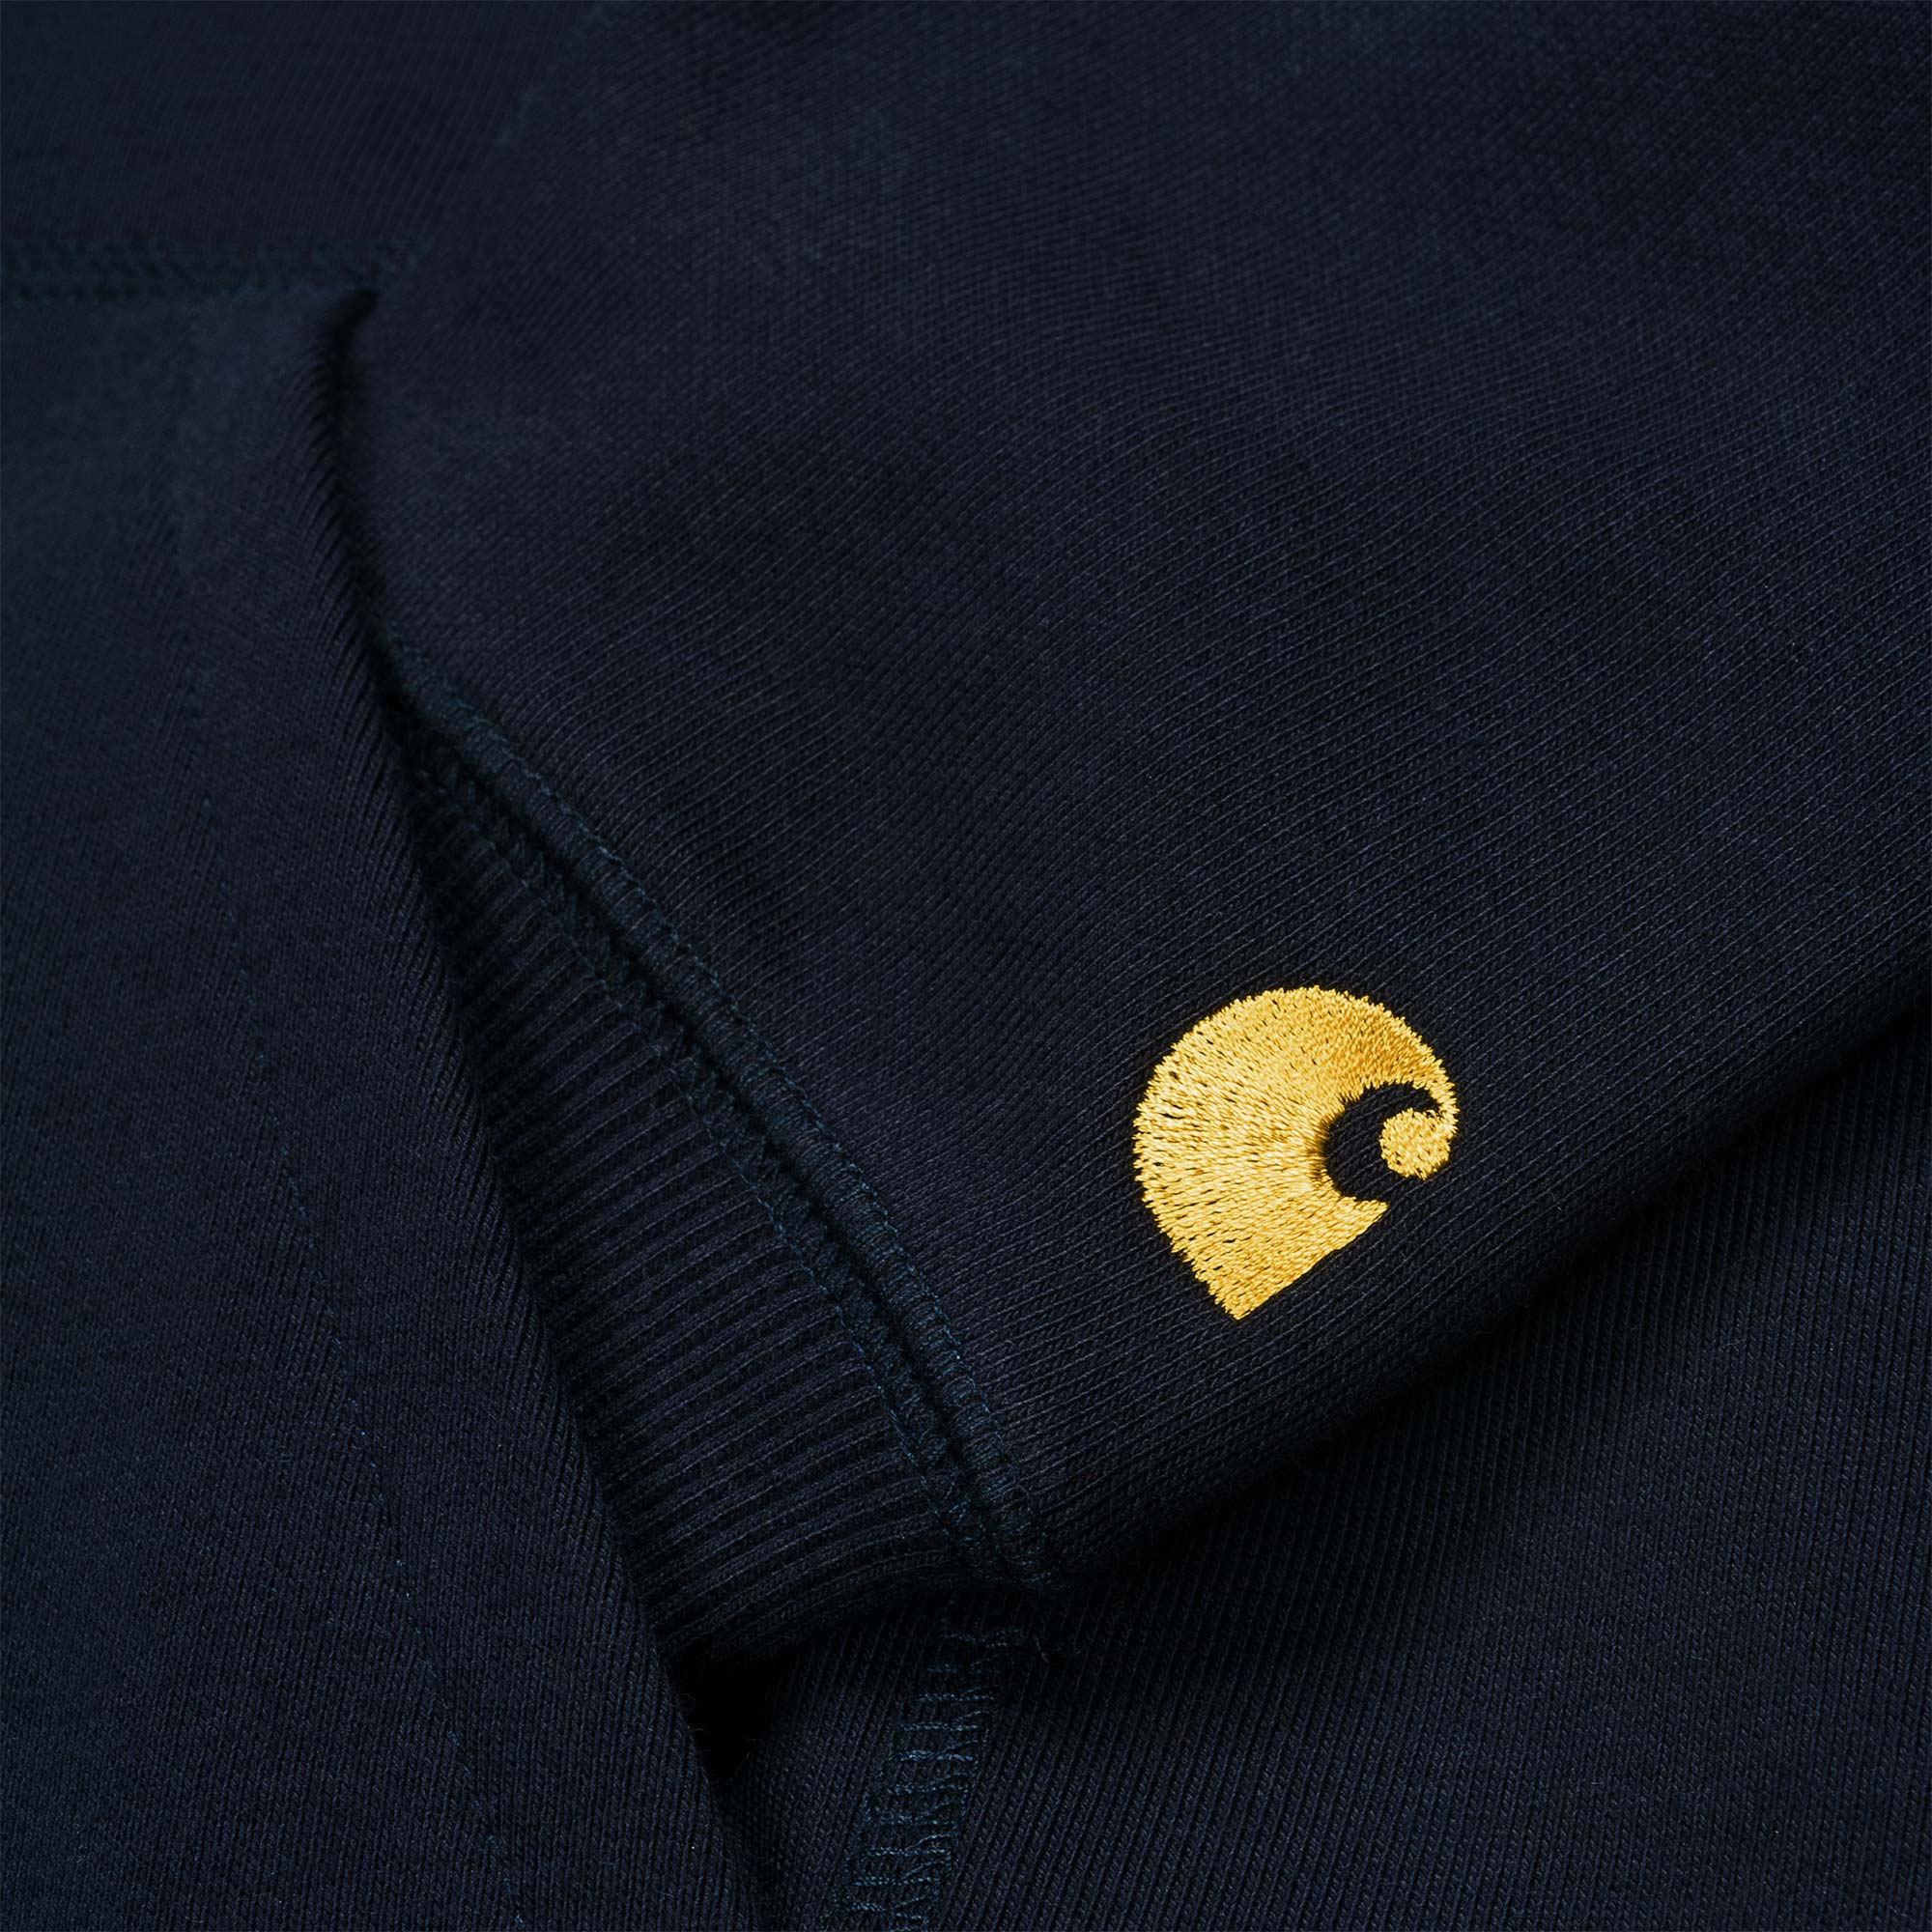 Carhartt WIP Hooded Chase Sweat - Dark Navy / Gold 3